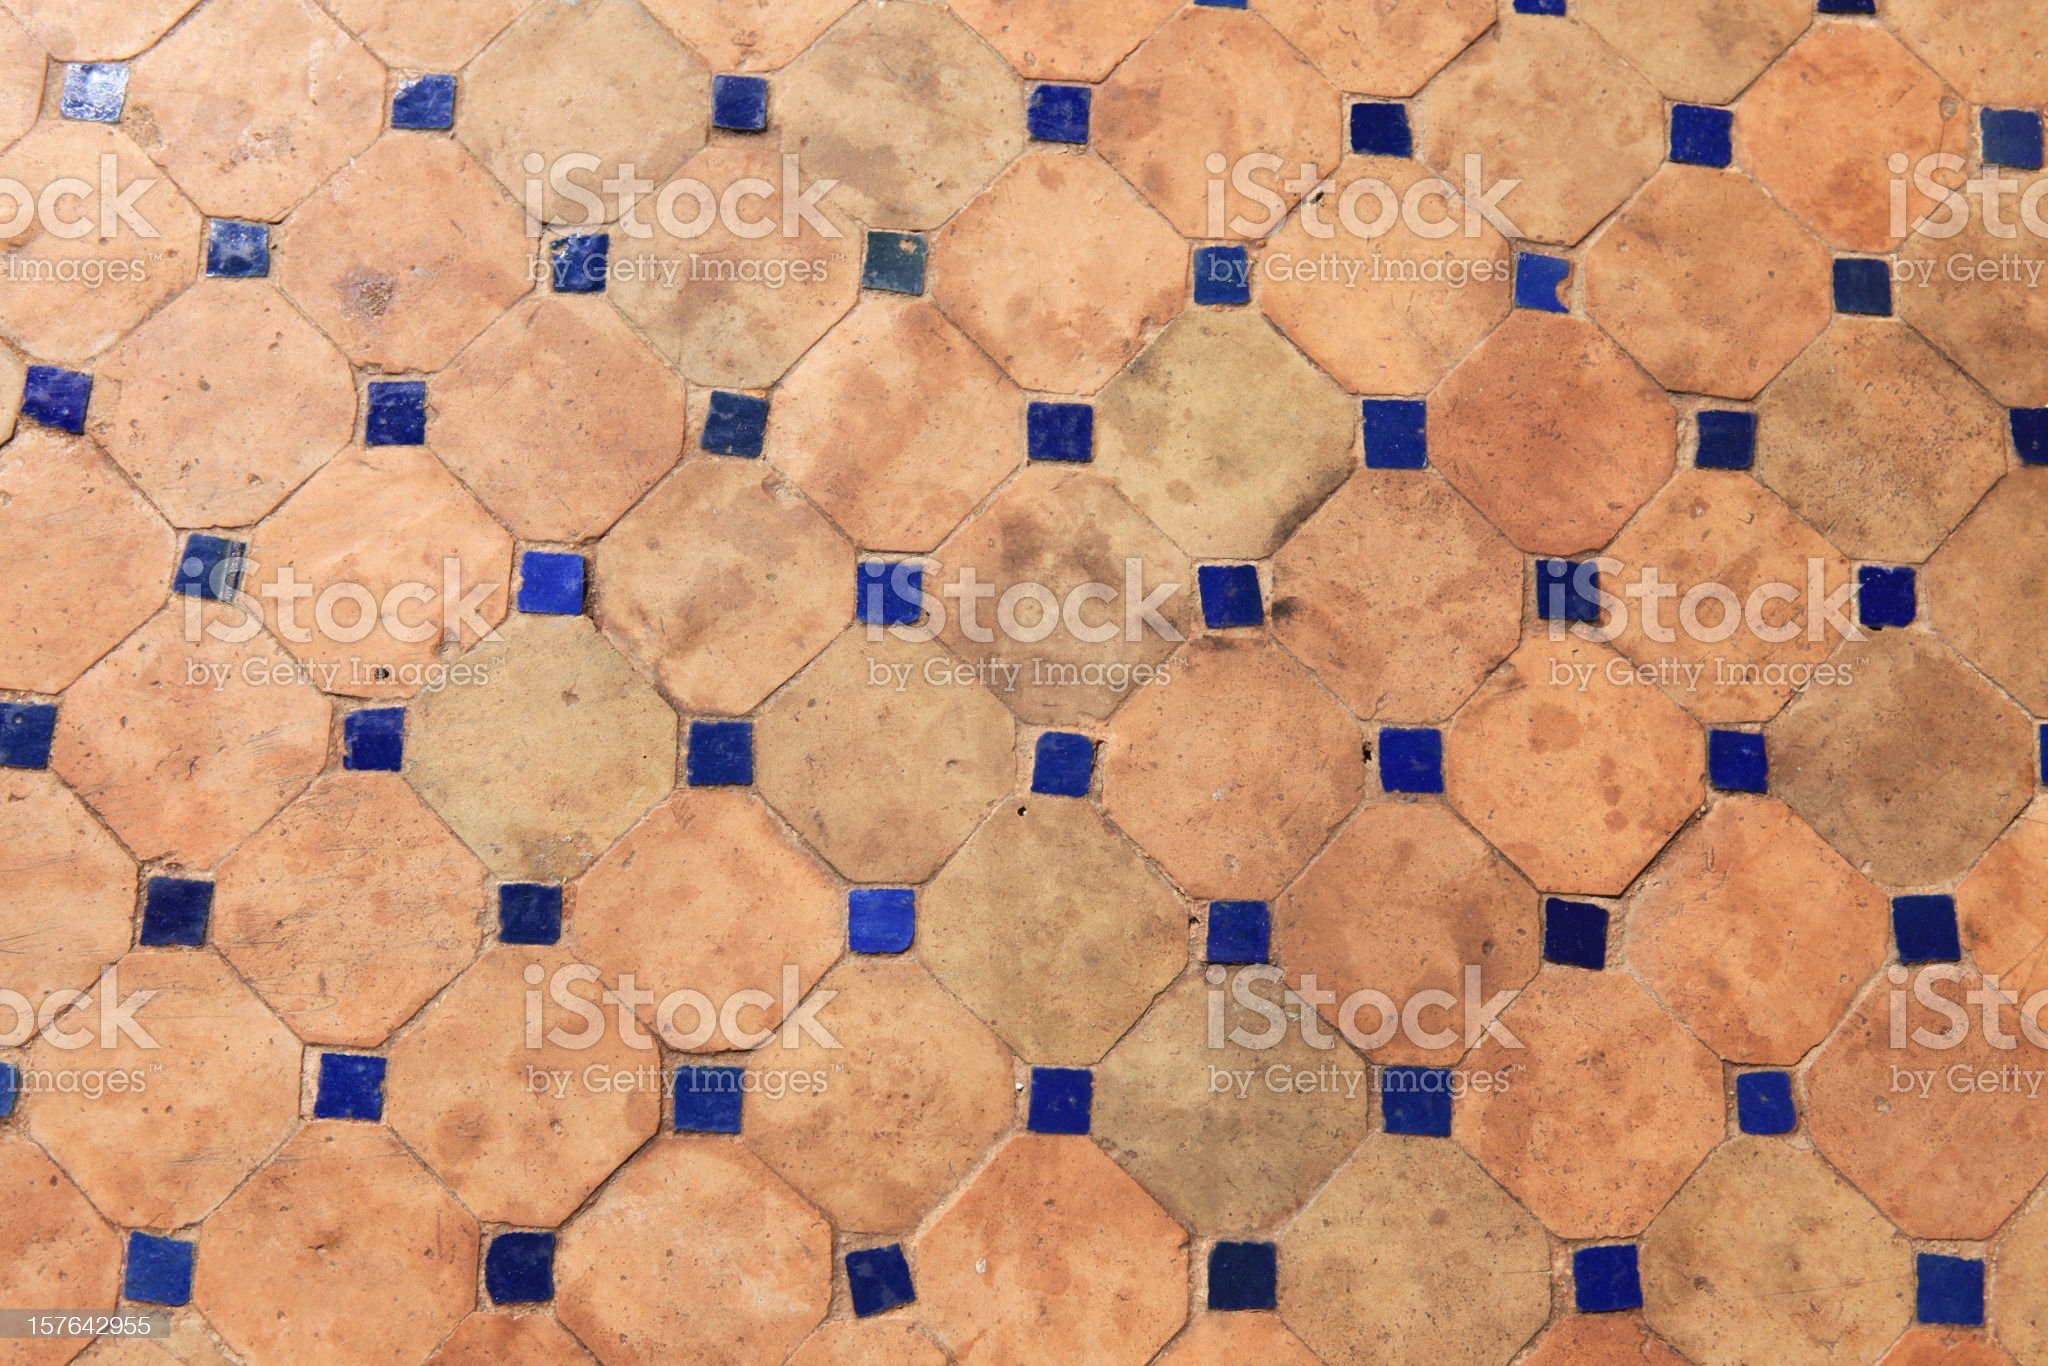 Old Traditional Moroccan Tiles on Floor royalty-free stock photo